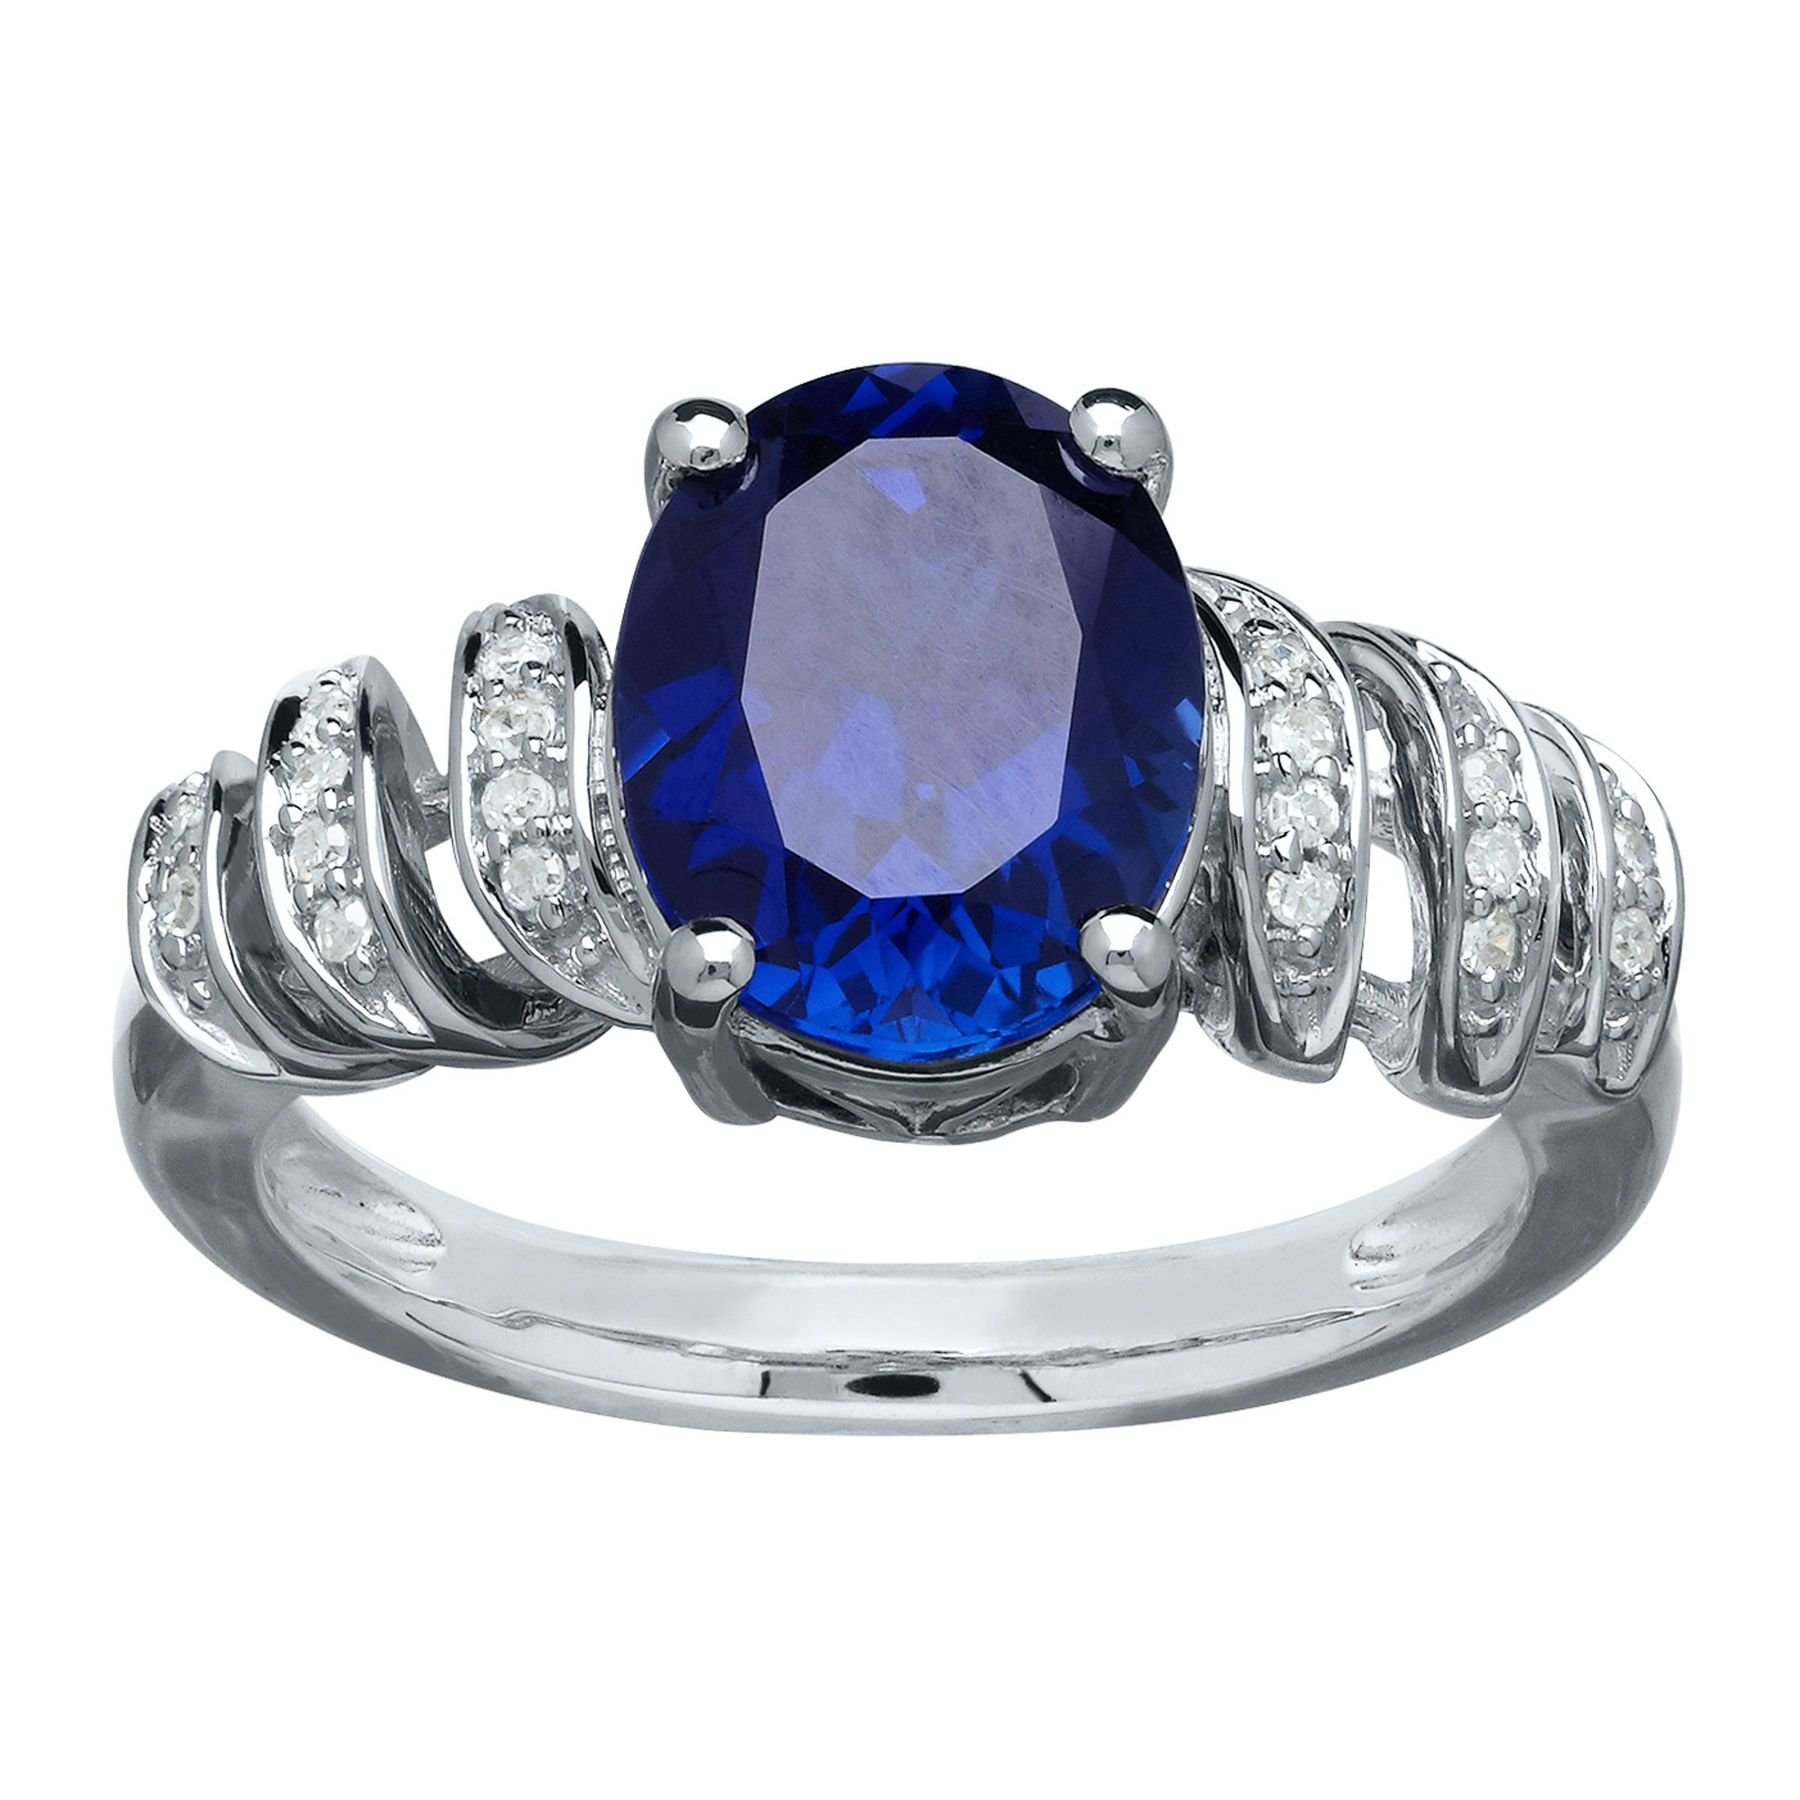 sapphire jewellery white saffire marie products ring natalie rings precious